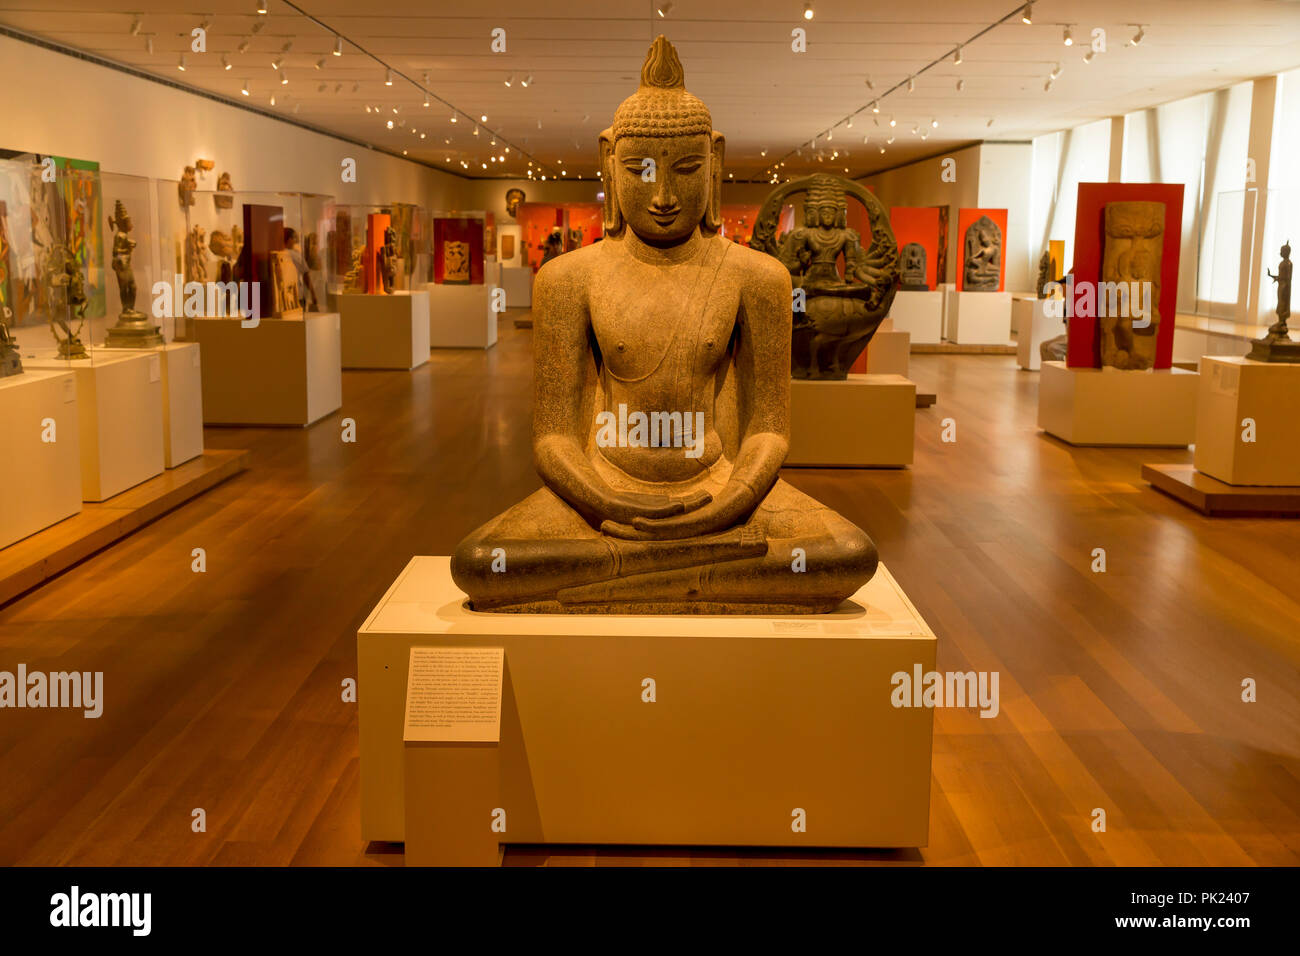 New Gallery of Asian Art, Art Institute of Chicago, Chicago, Illinois, USA, North America, - Stock Image